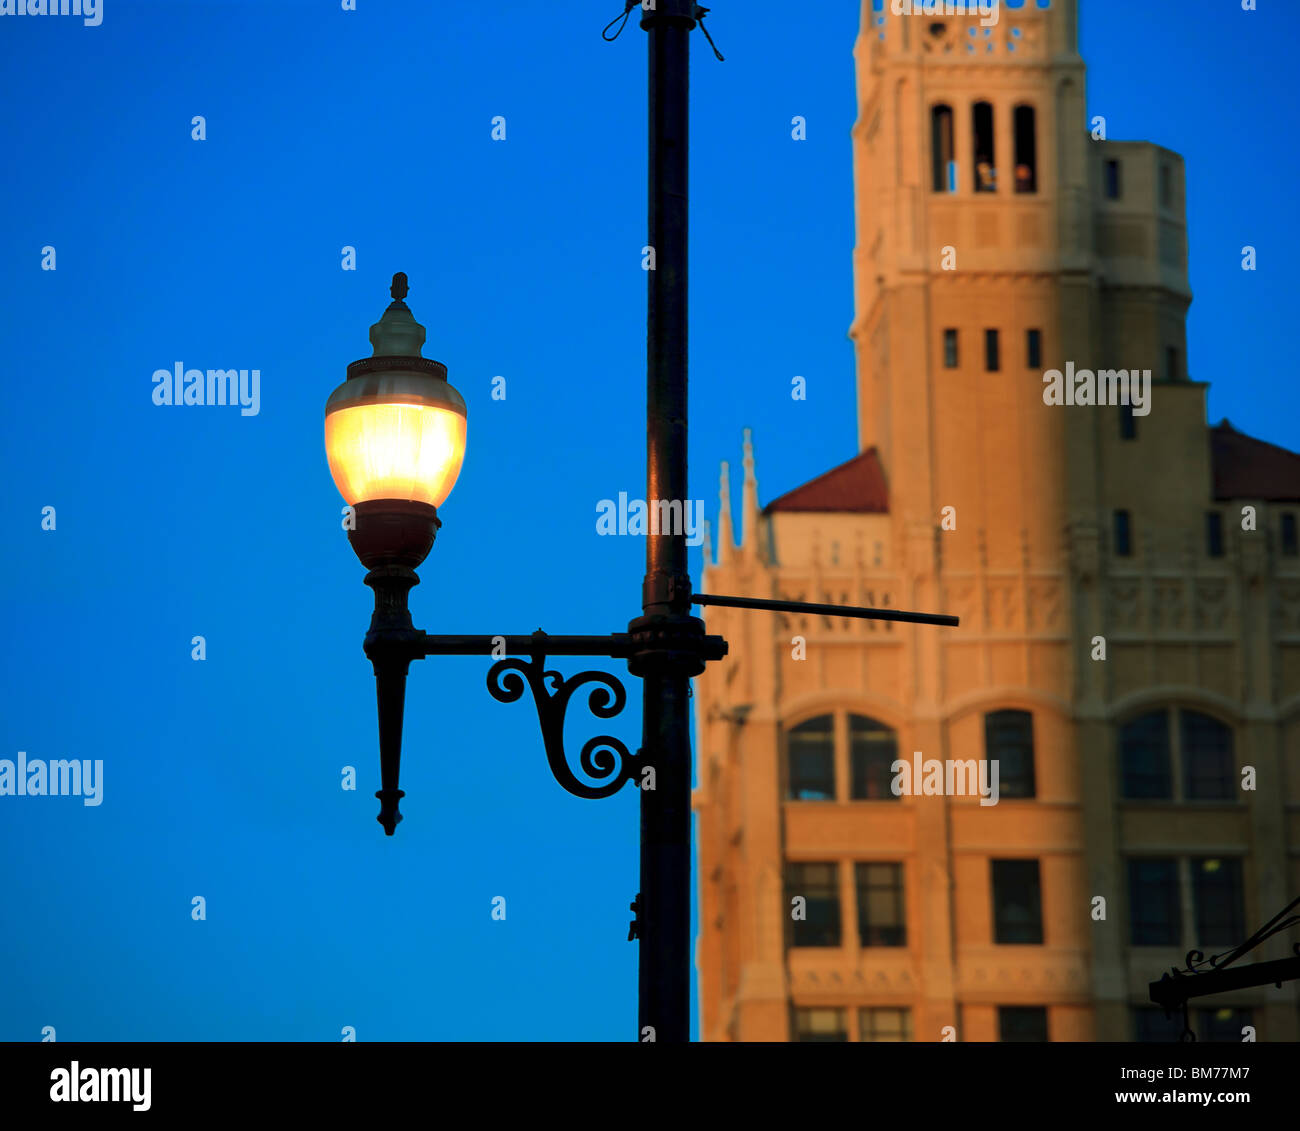 Jackson Building on Pack's Square with street light, street lamp, in downtown Asheville North Carolina NC US - Stock Image